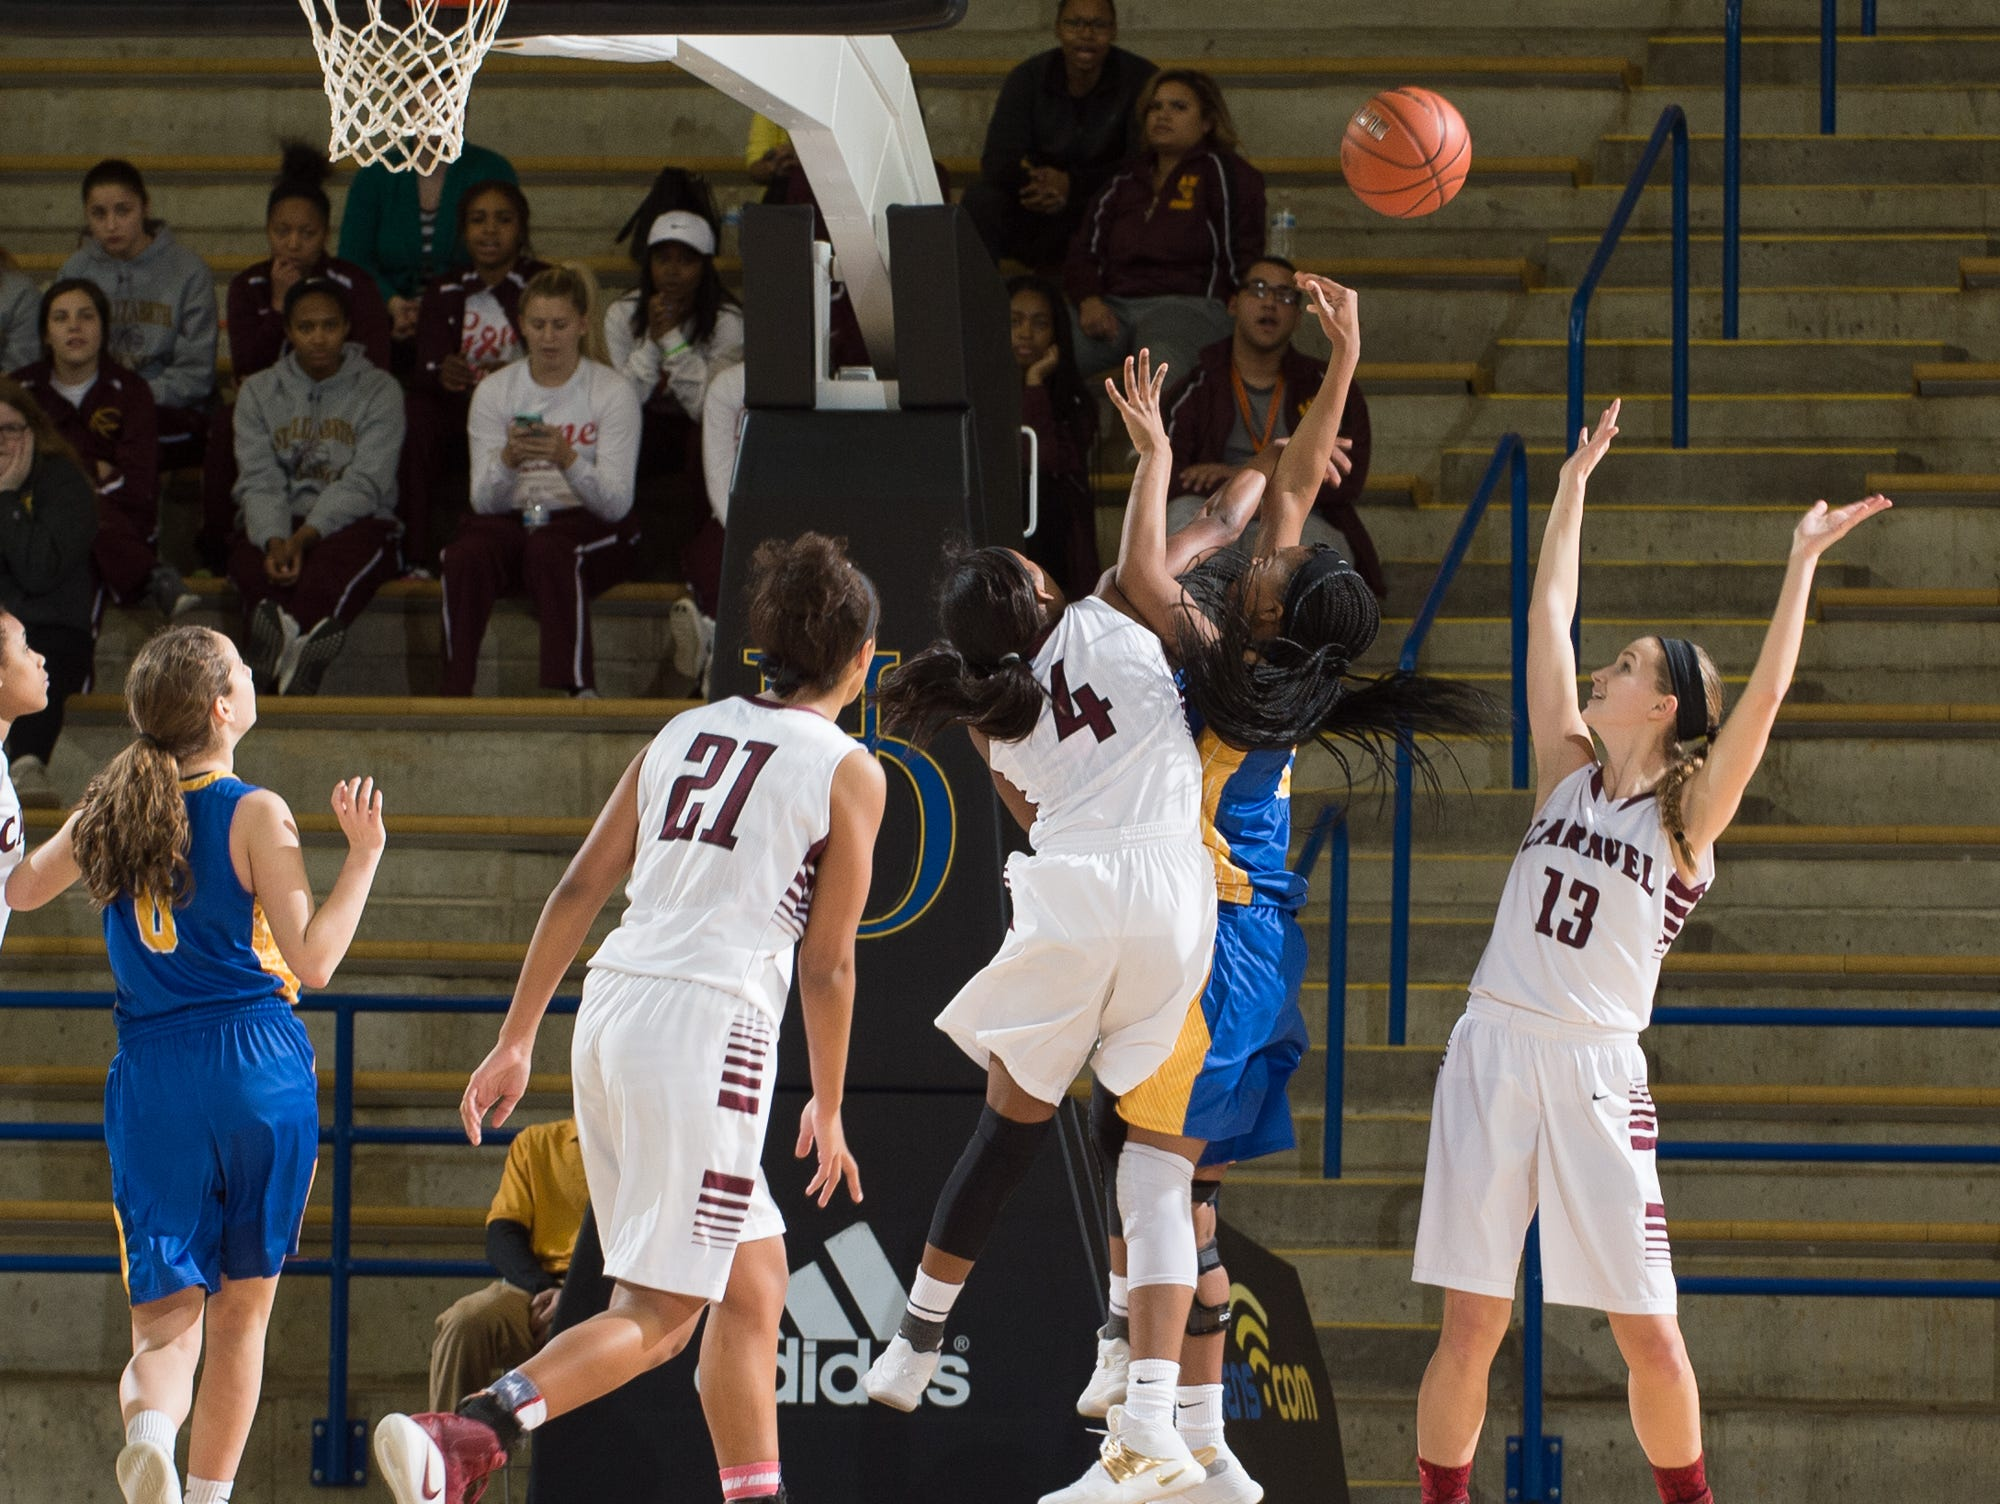 Caravel's Sasha Marvel (4) knocks the ball from A.I. duPont's Al'kirah Wilson (15) in their game at the quarterfinals of DIAA Girls Basketball Tournament at the University of Delaware.